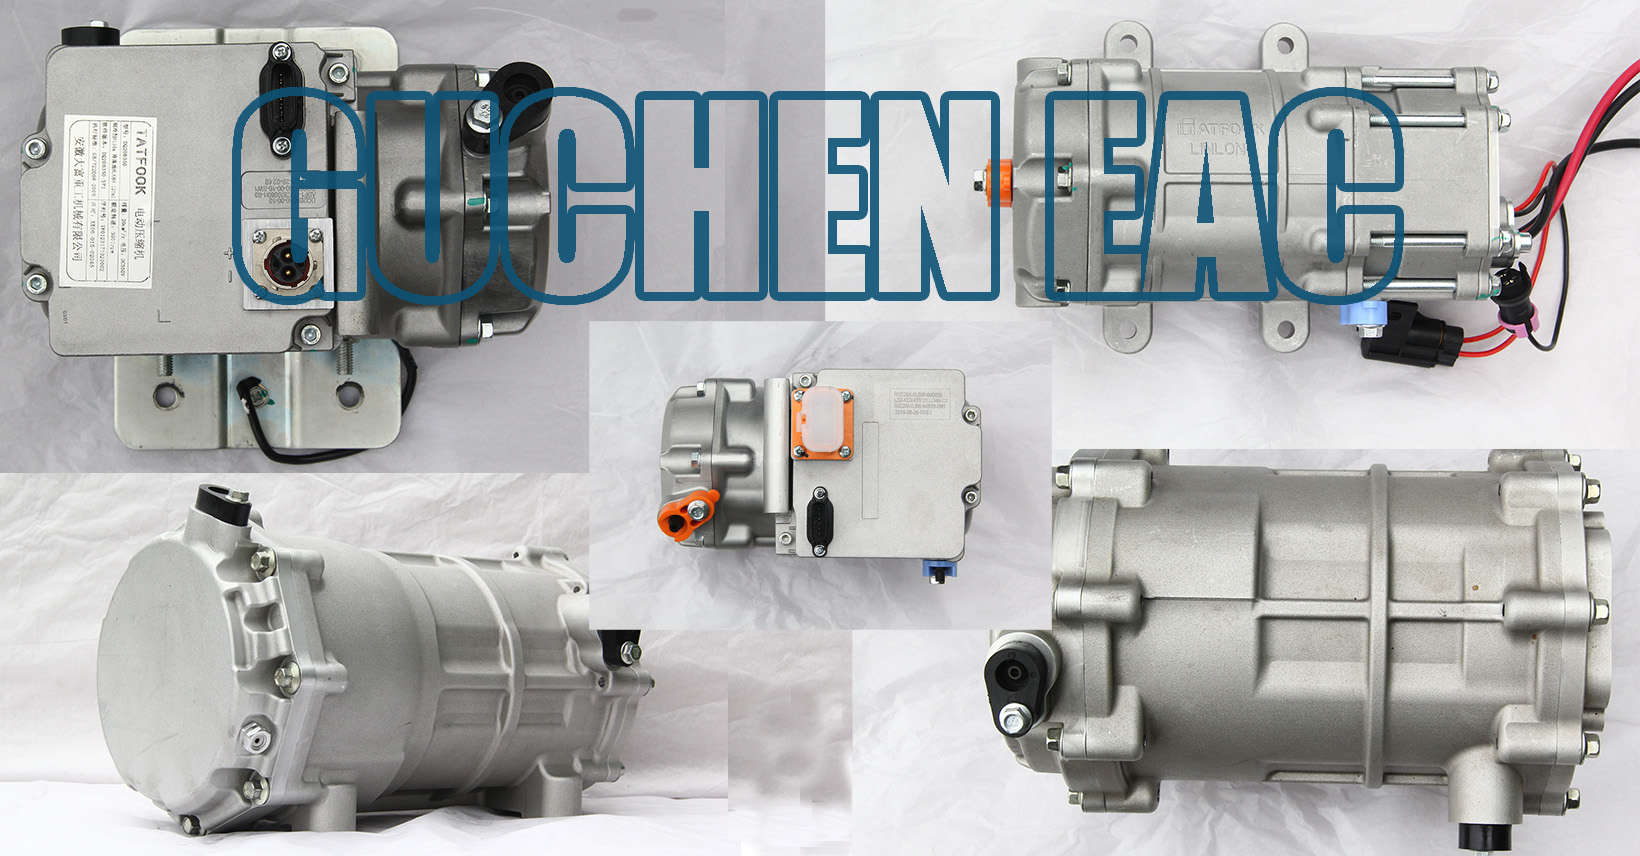 Guchen EAC Electric air-conditioning compressors